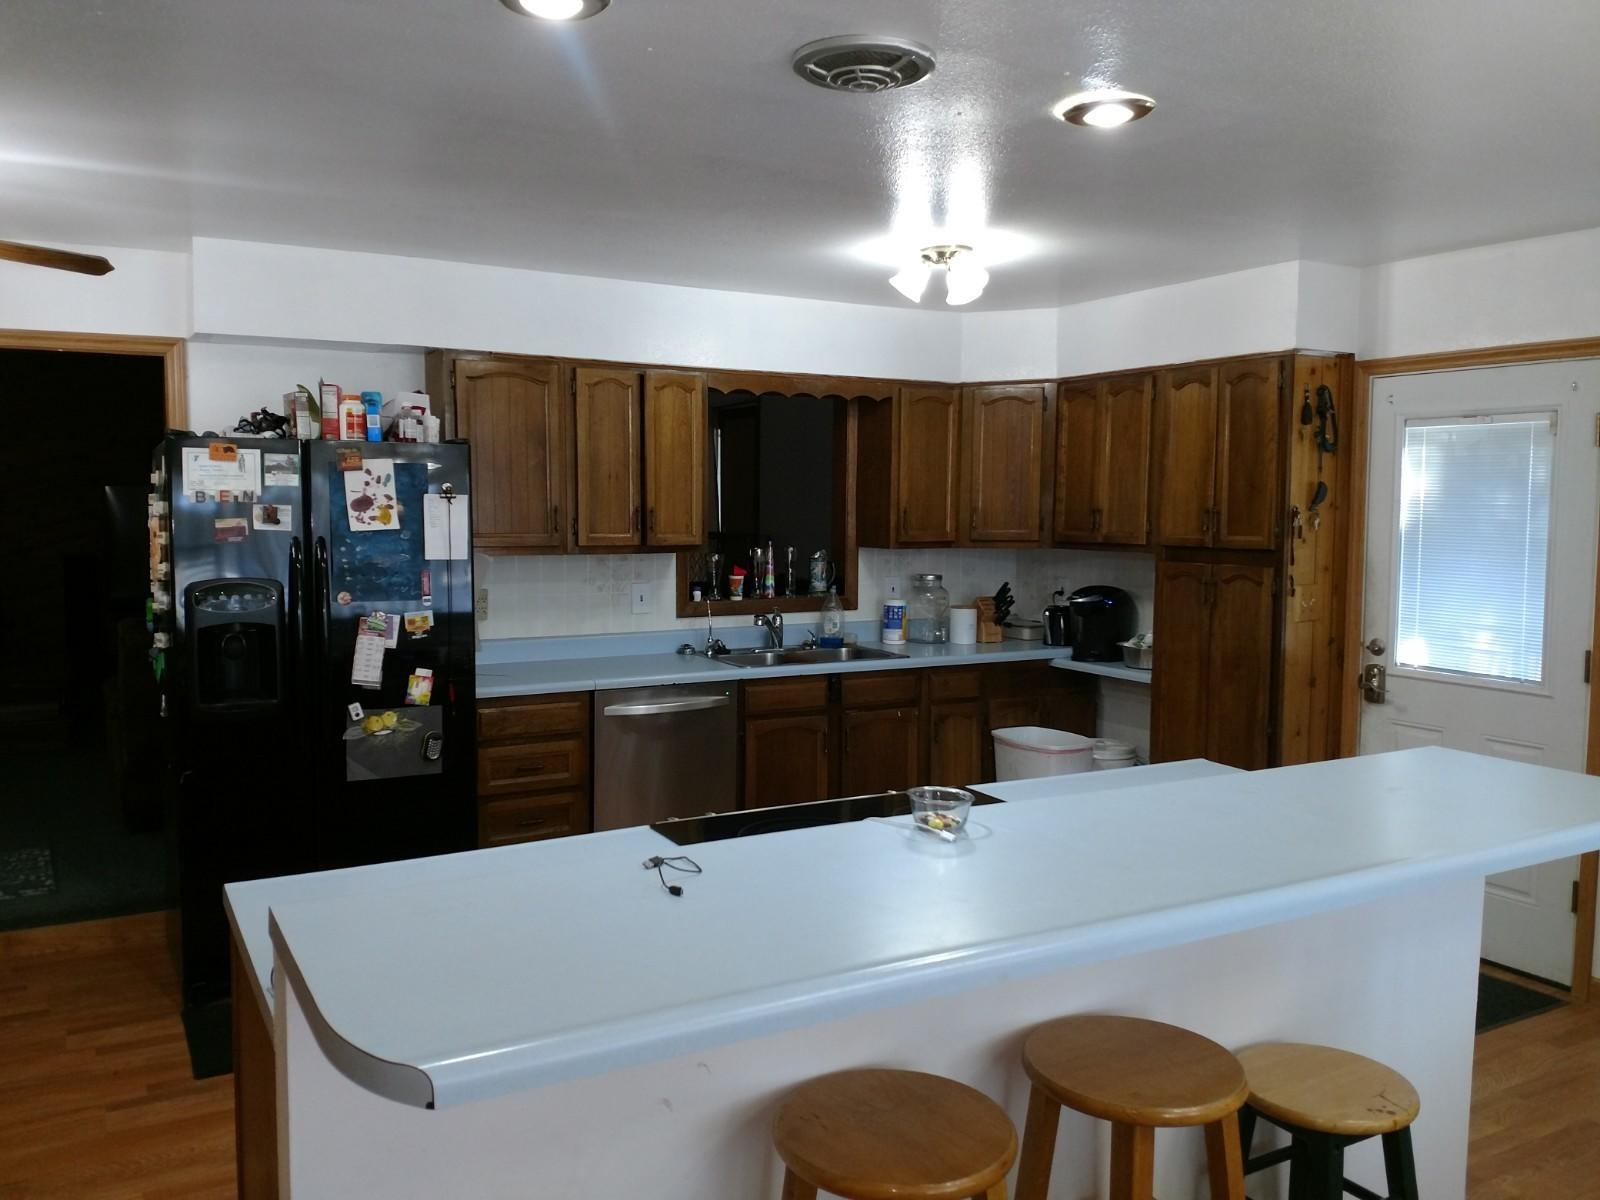 637 Betty Street, Ranchester, Wyoming 82839, 4 Bedrooms Bedrooms, ,1.5 BathroomsBathrooms,Residential,For Sale,Betty,19-210